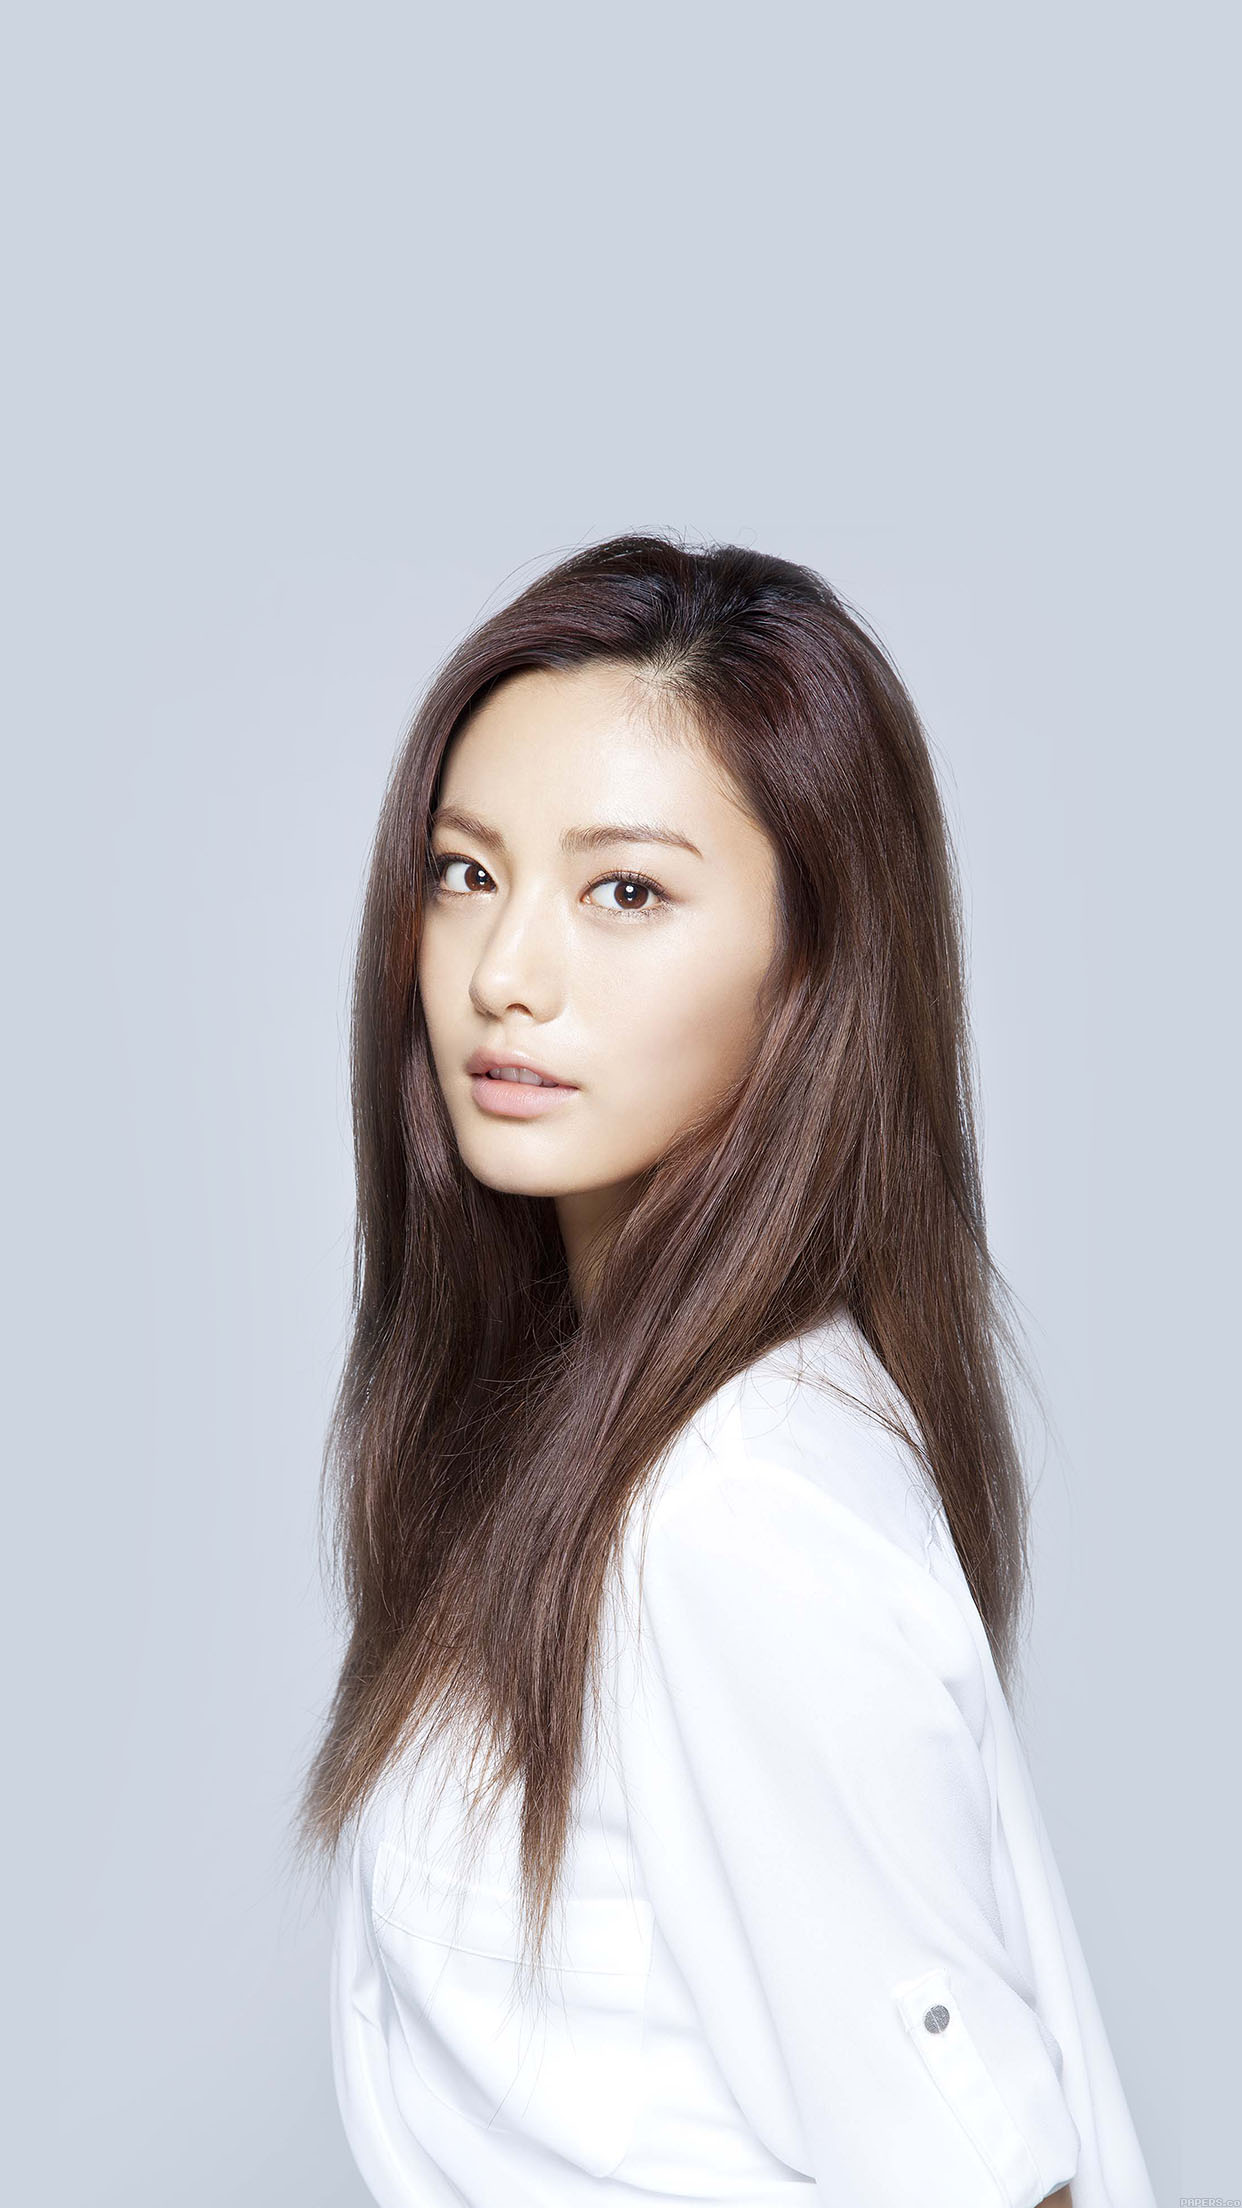 Wallpaper Afterschool Nana Kpop Android wallpaper